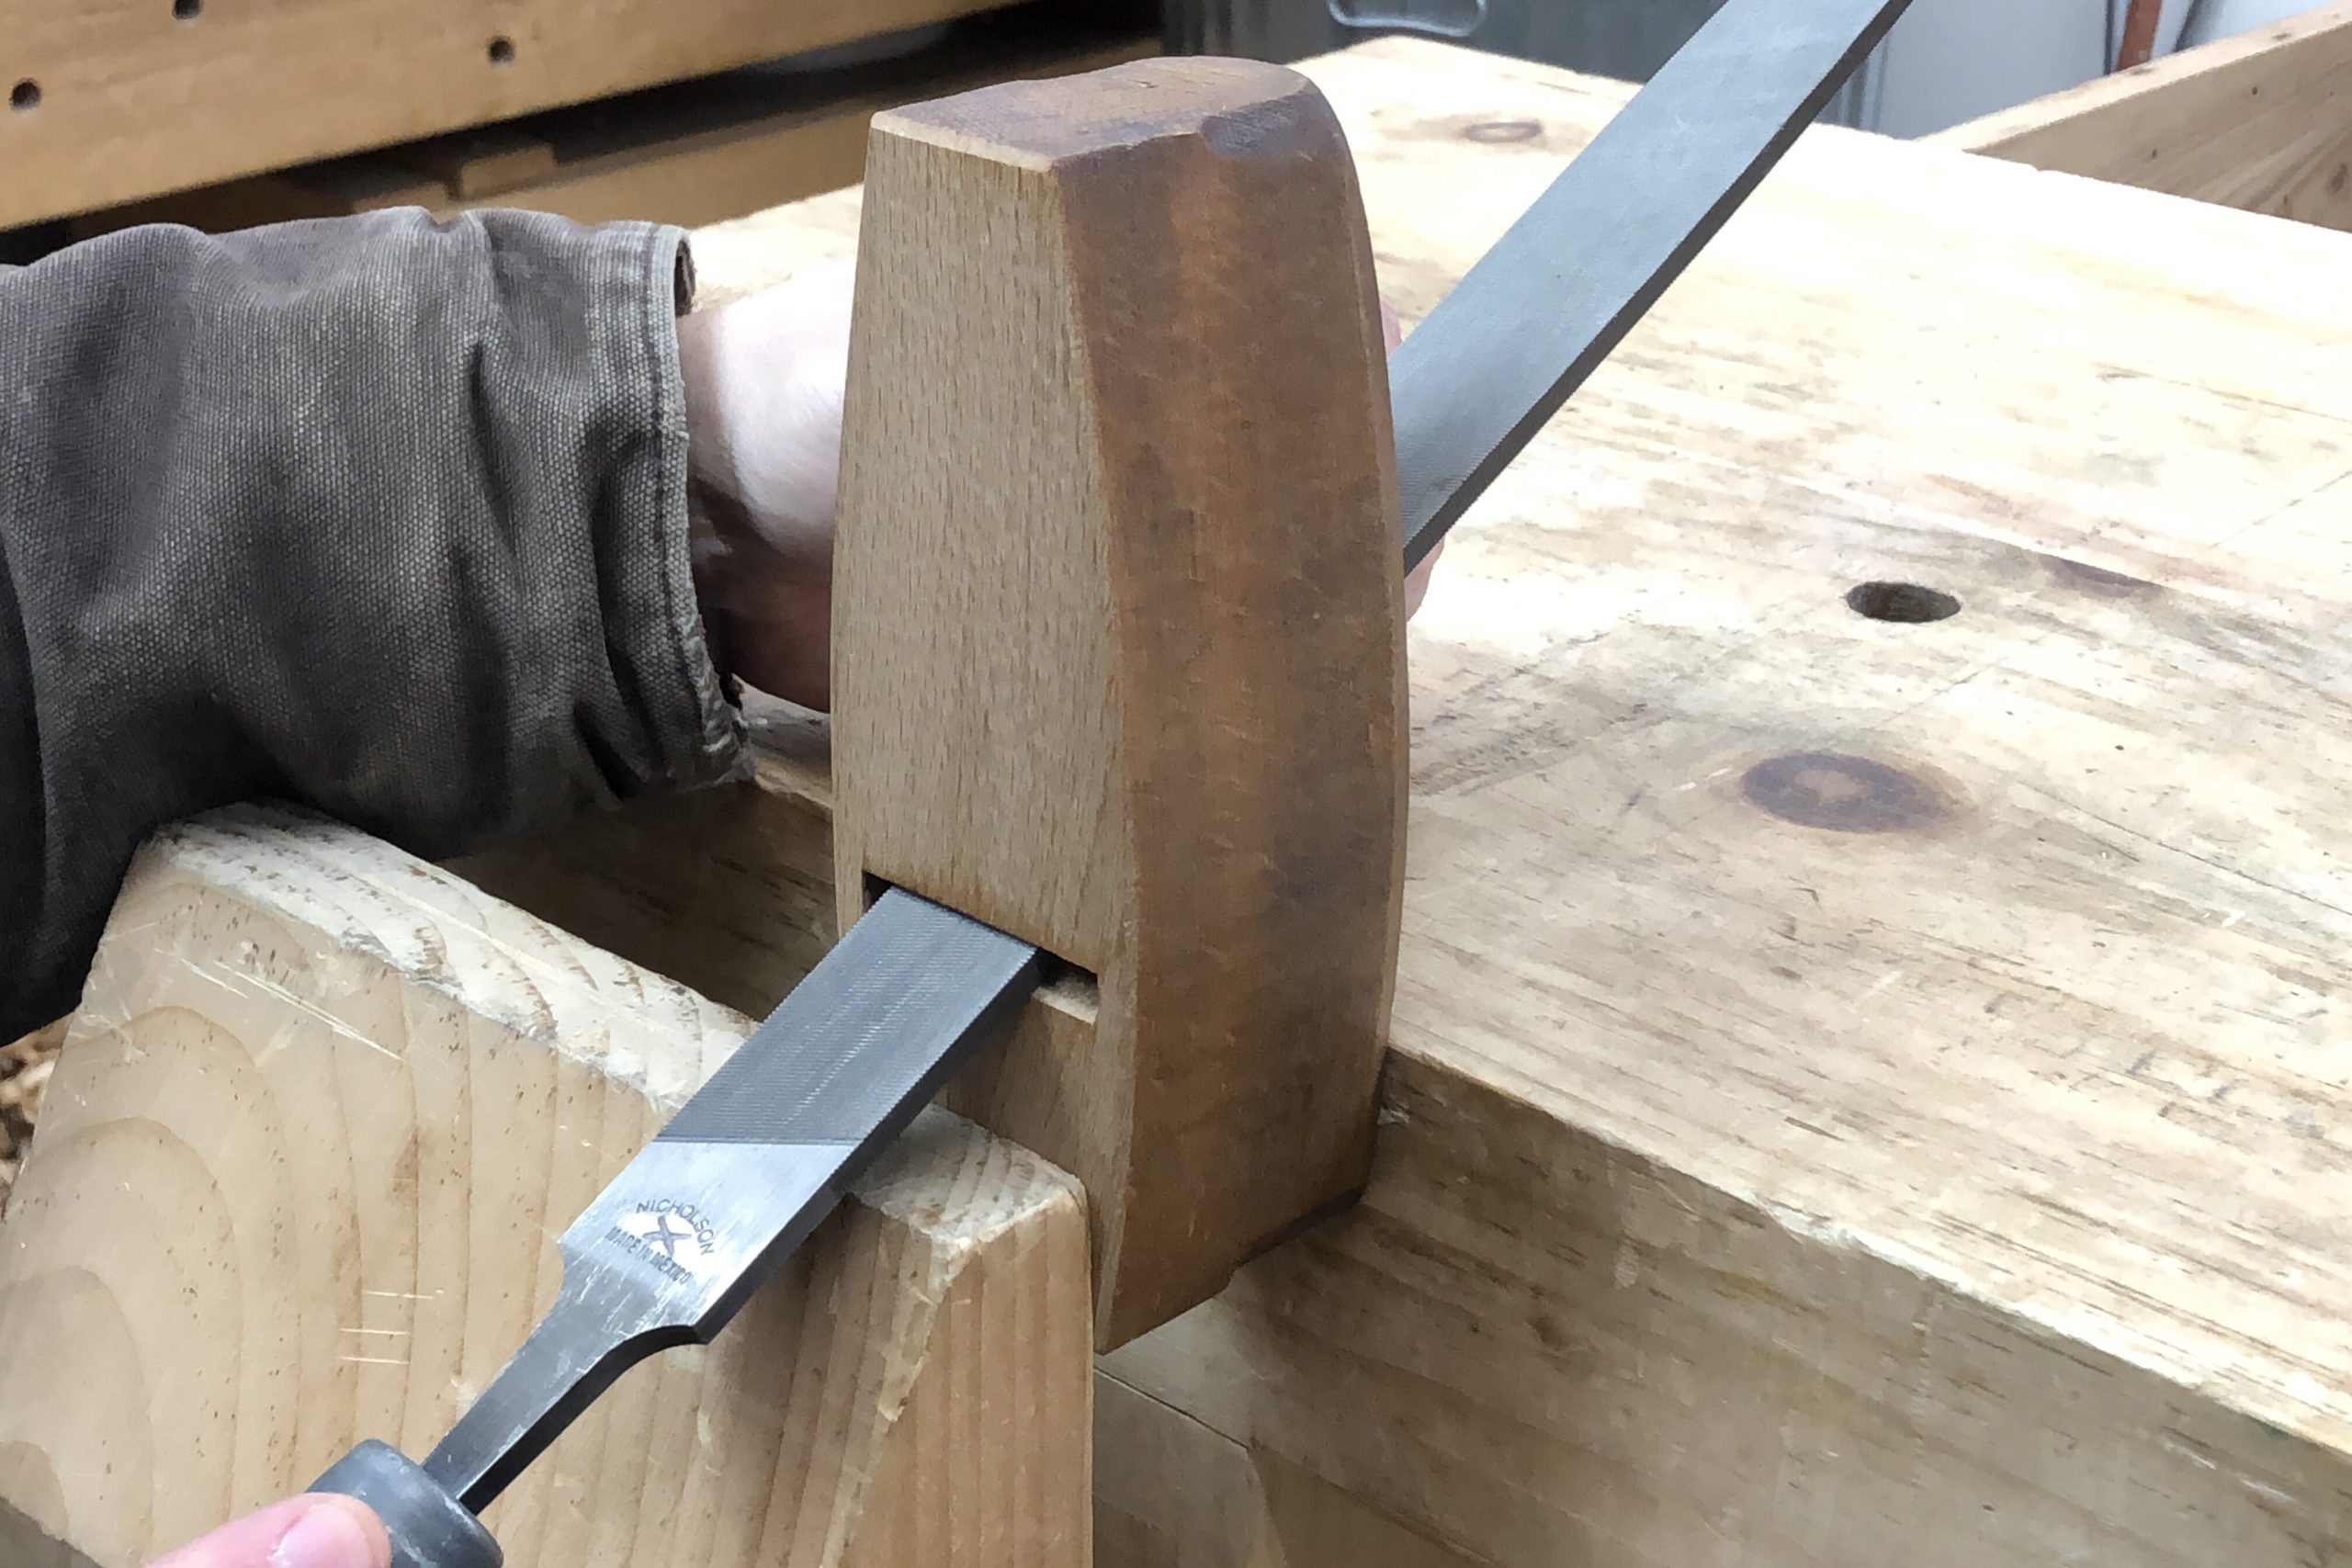 Filing the Throat of a Wooden Hand Plane